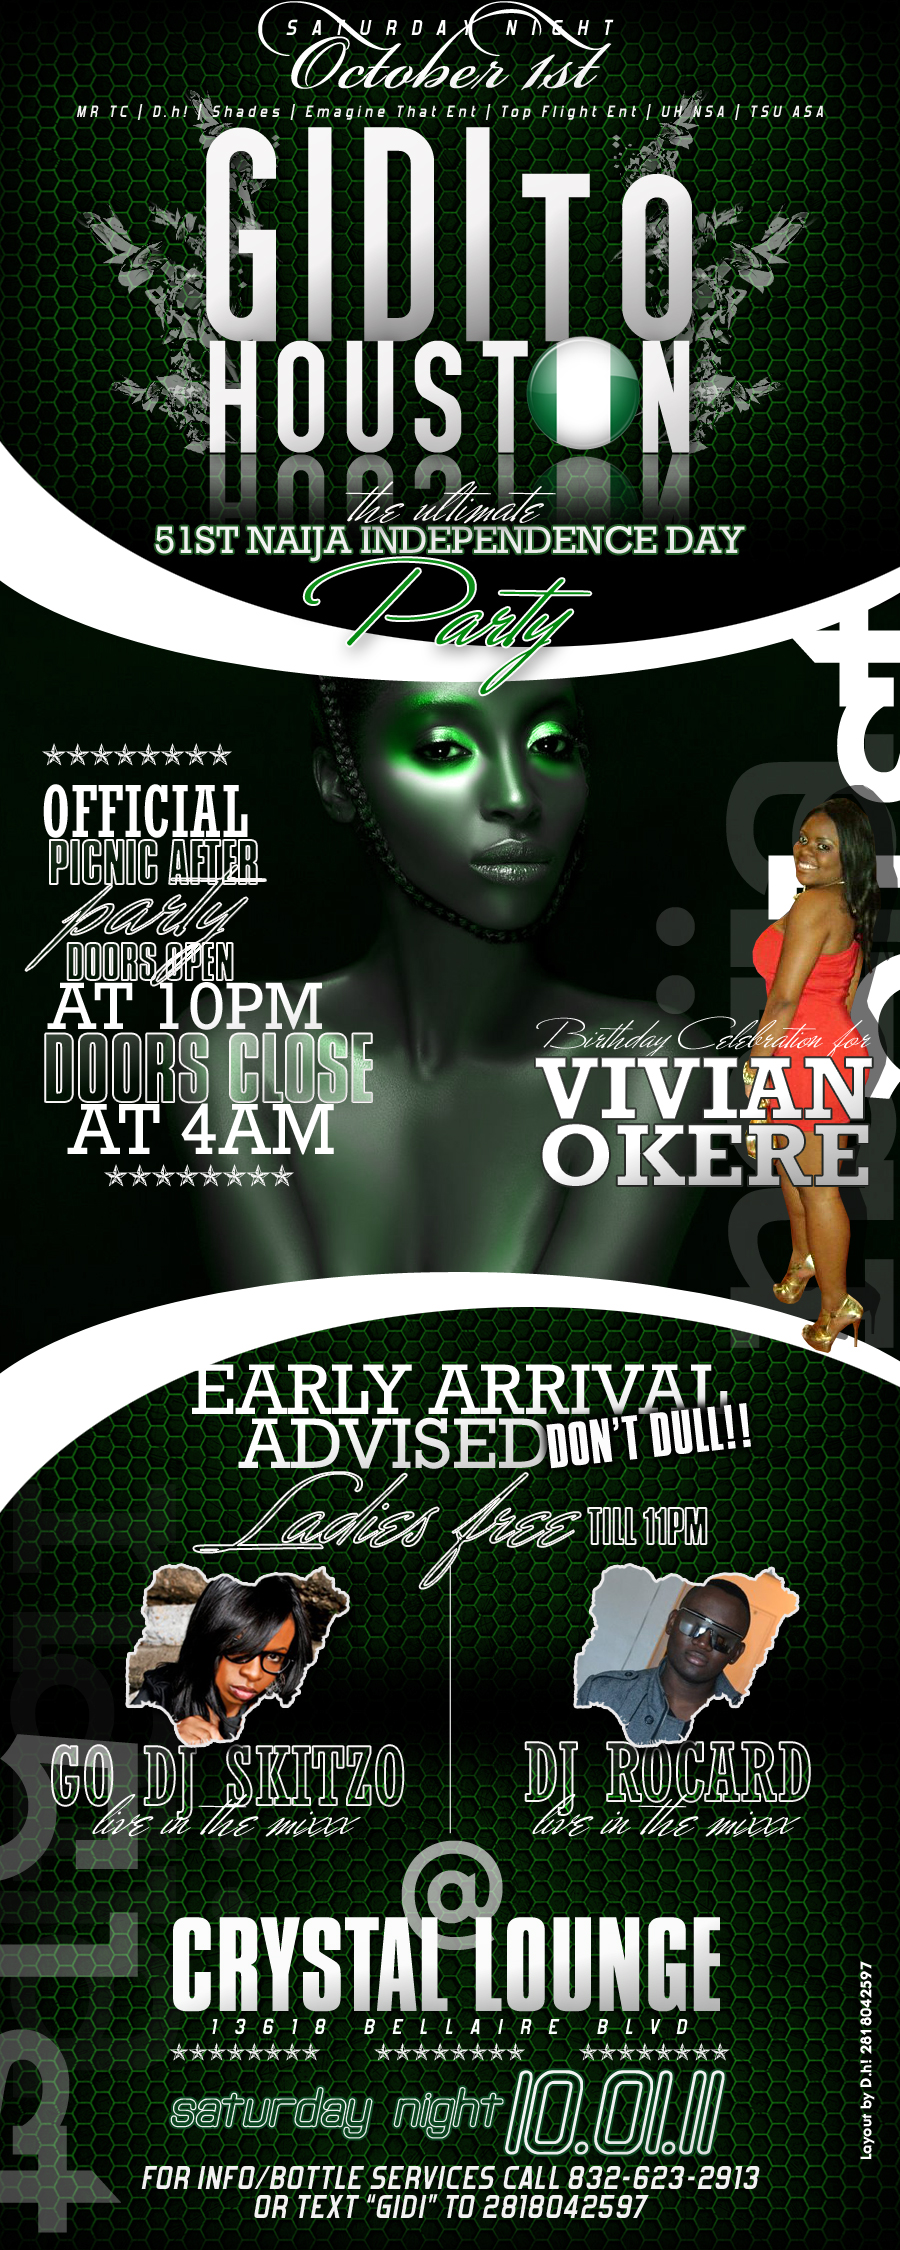 THE PARTY CONTINUES AT CRYSTAL LOUNGE ON SAT OCT 1ST AT CRYSTAL LOUNGE....DON'T MISS IT